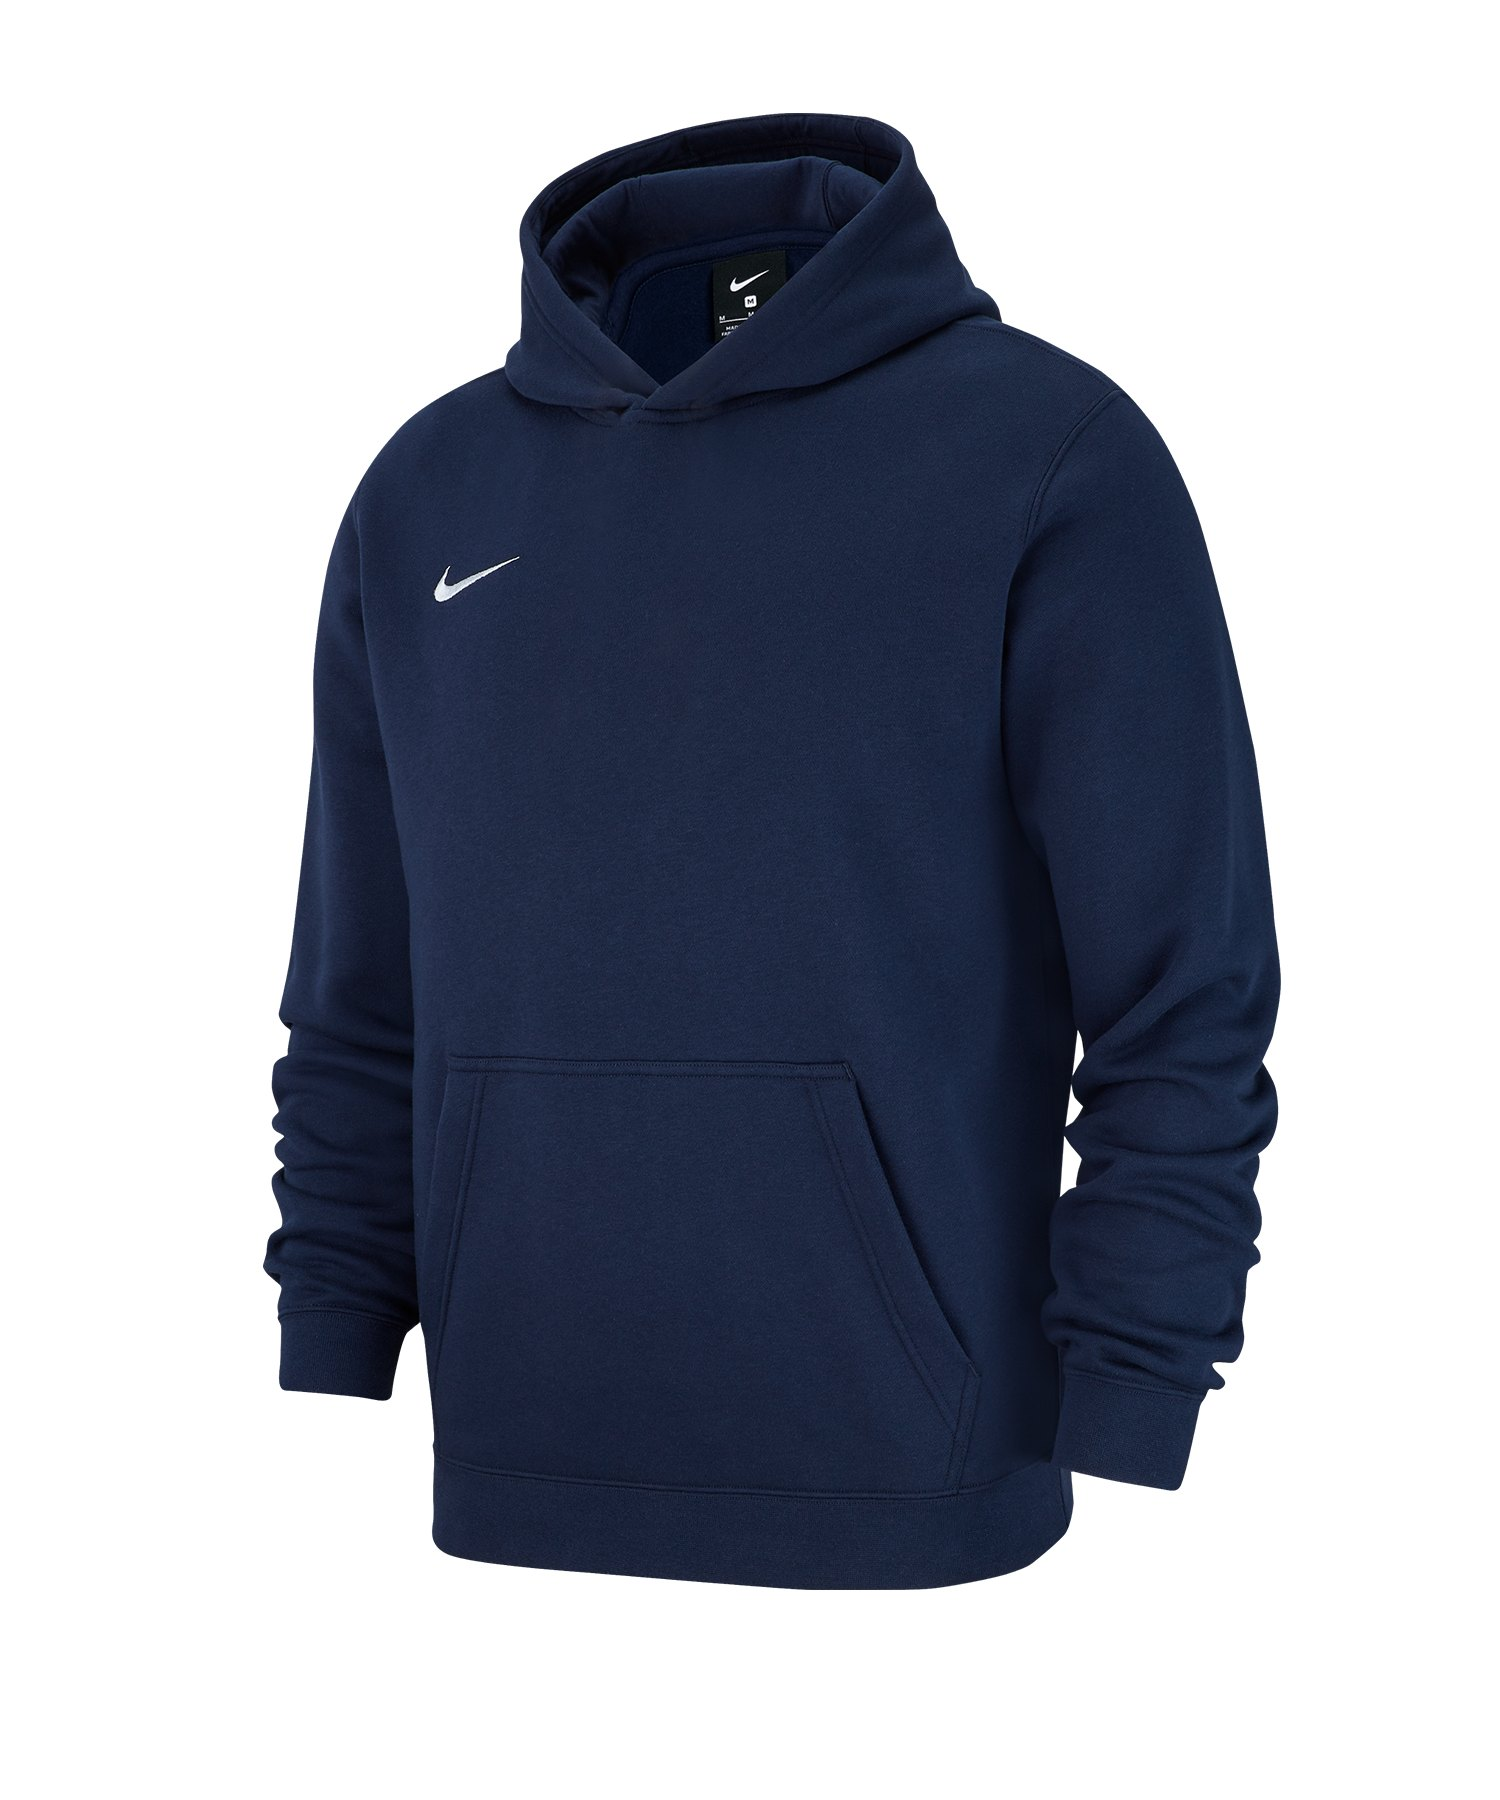 Nike Club 19 Fleece Hoody Kids Blau F451 - blau